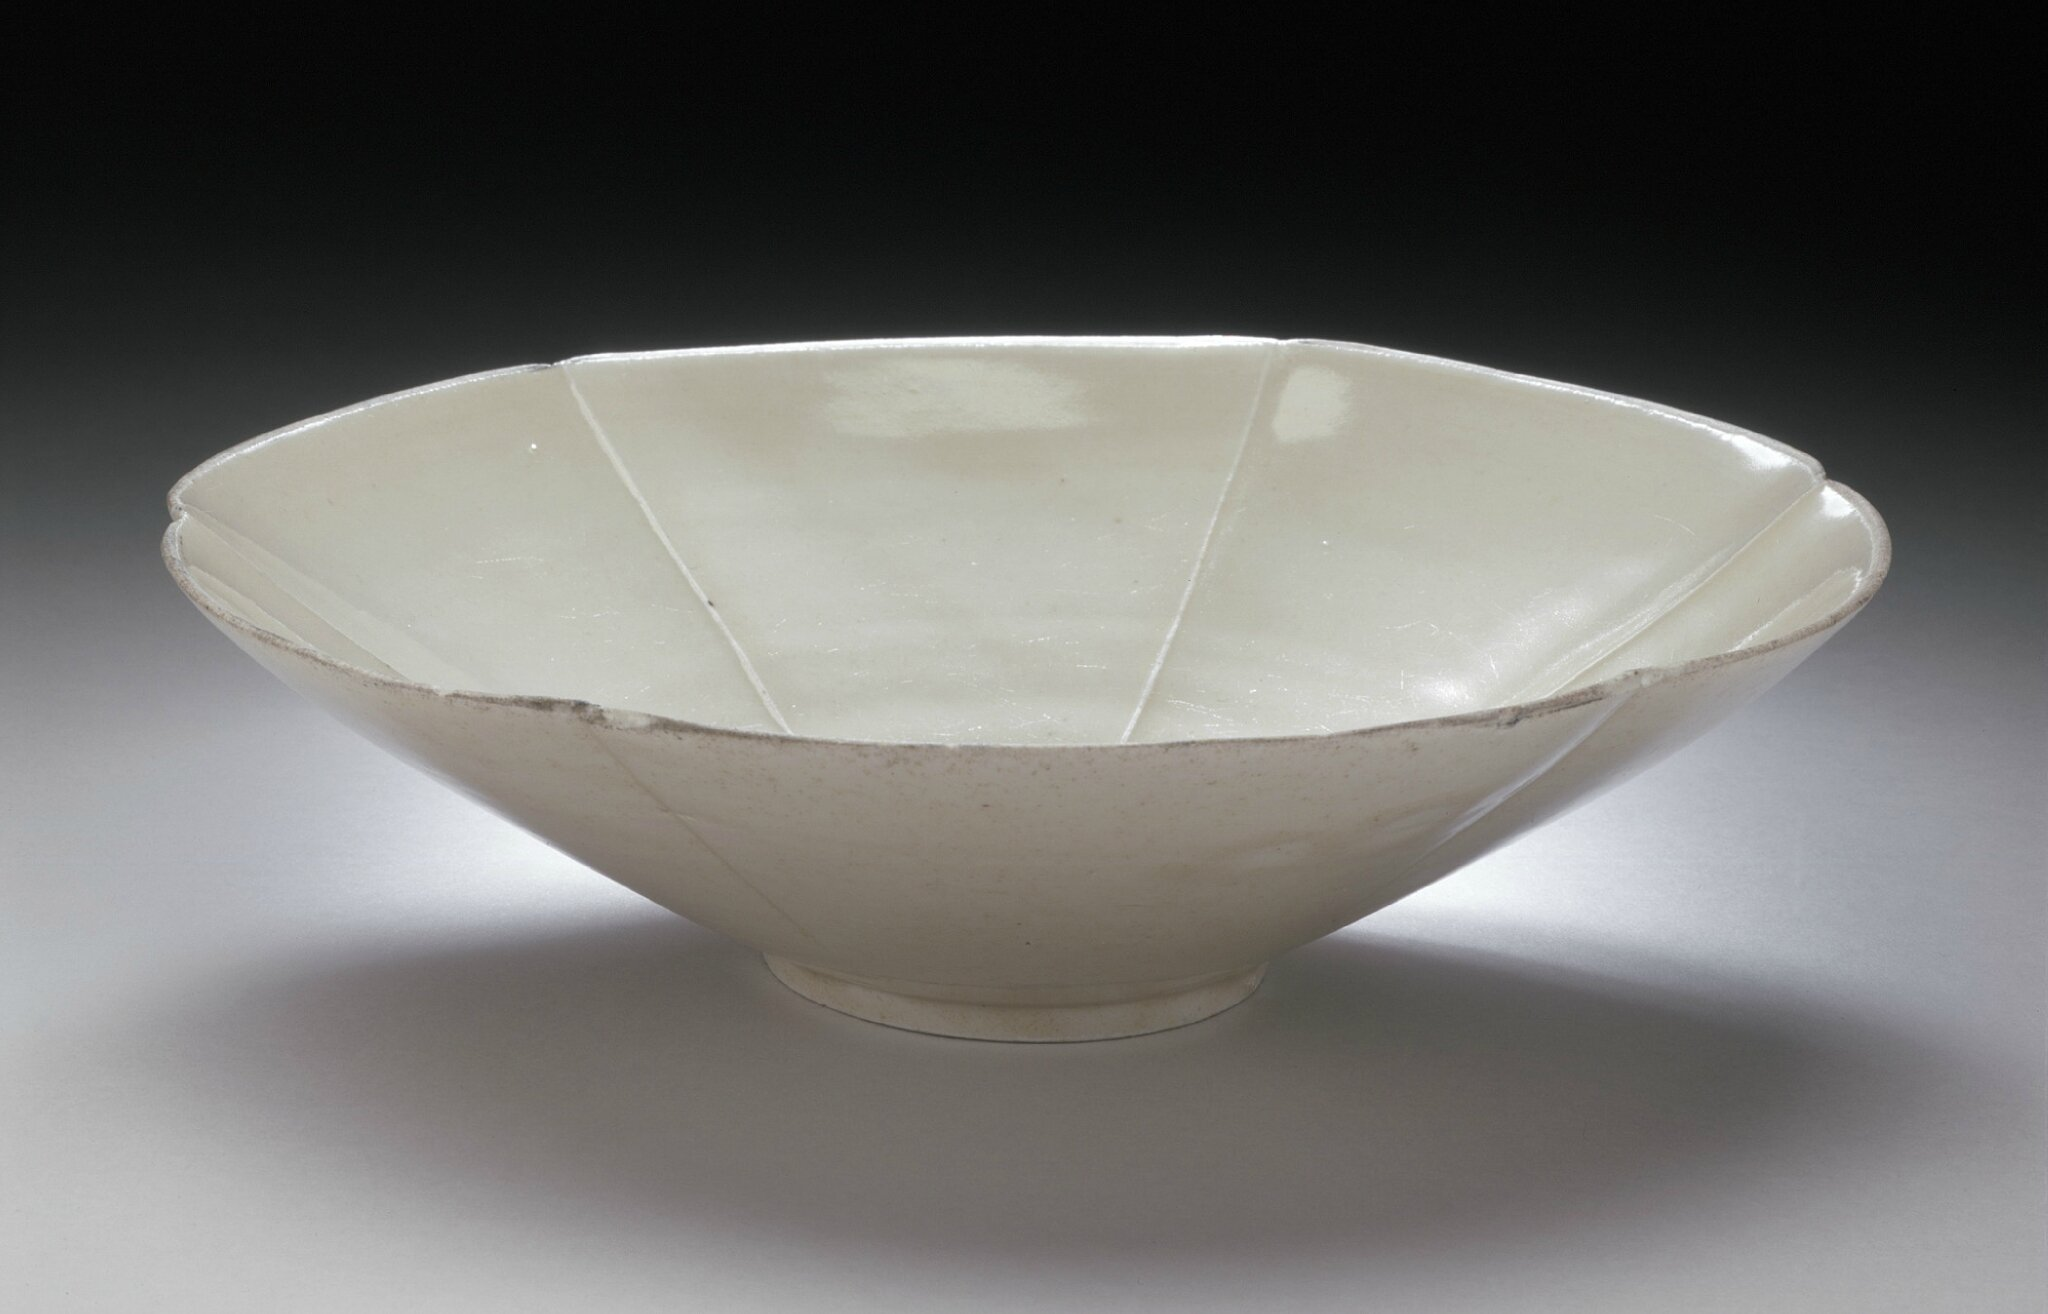 Lobed Bowl (Wan), China, Northern Song dynasty, 960-1127